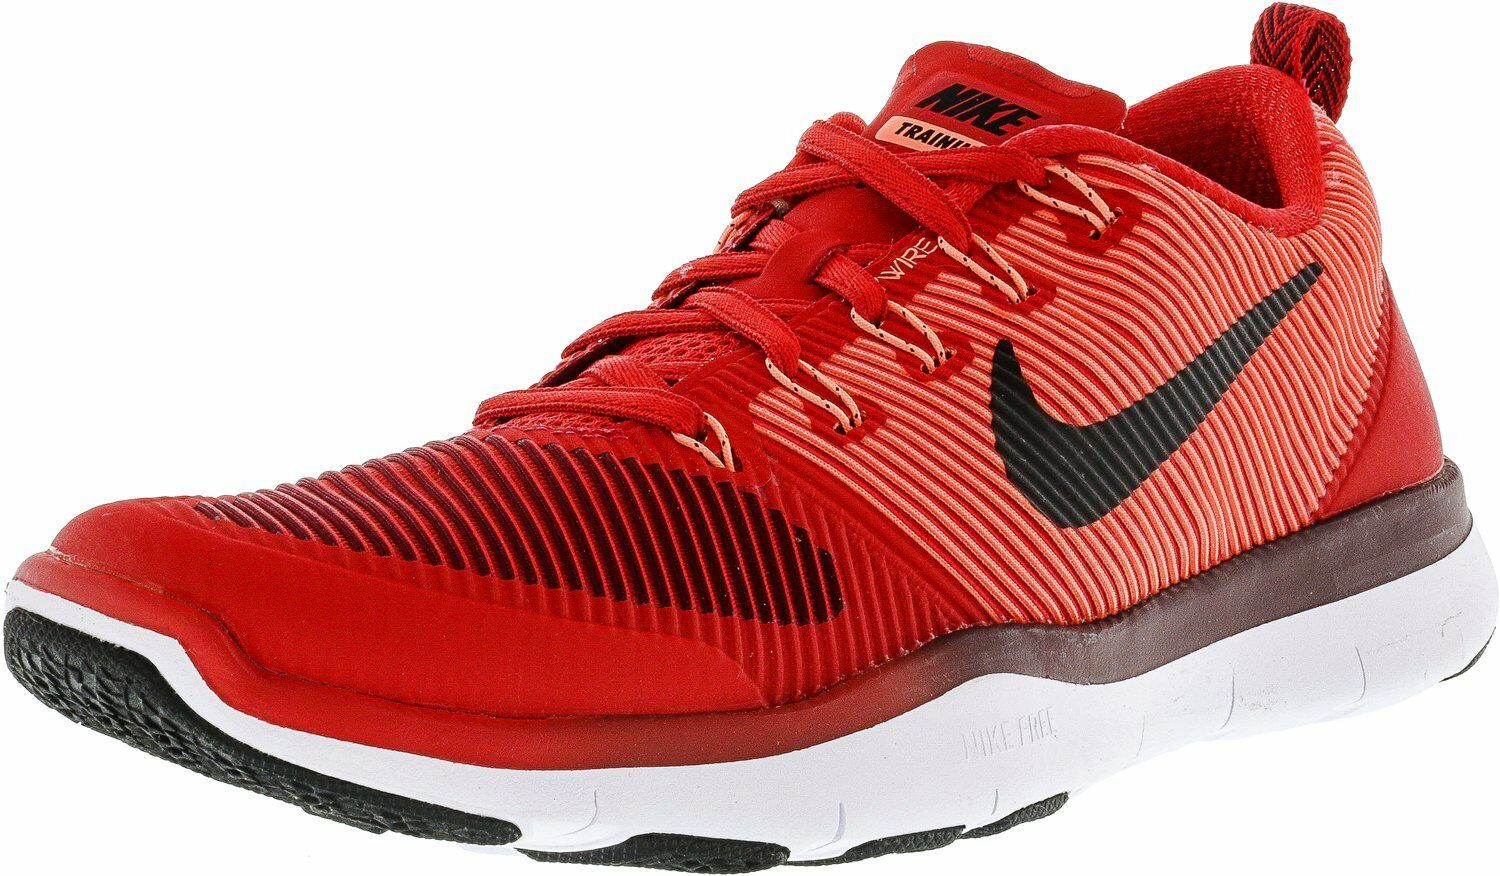 NIKE Men's Free Train Versatility Running Shoes University Red/Black 9 D(M) US